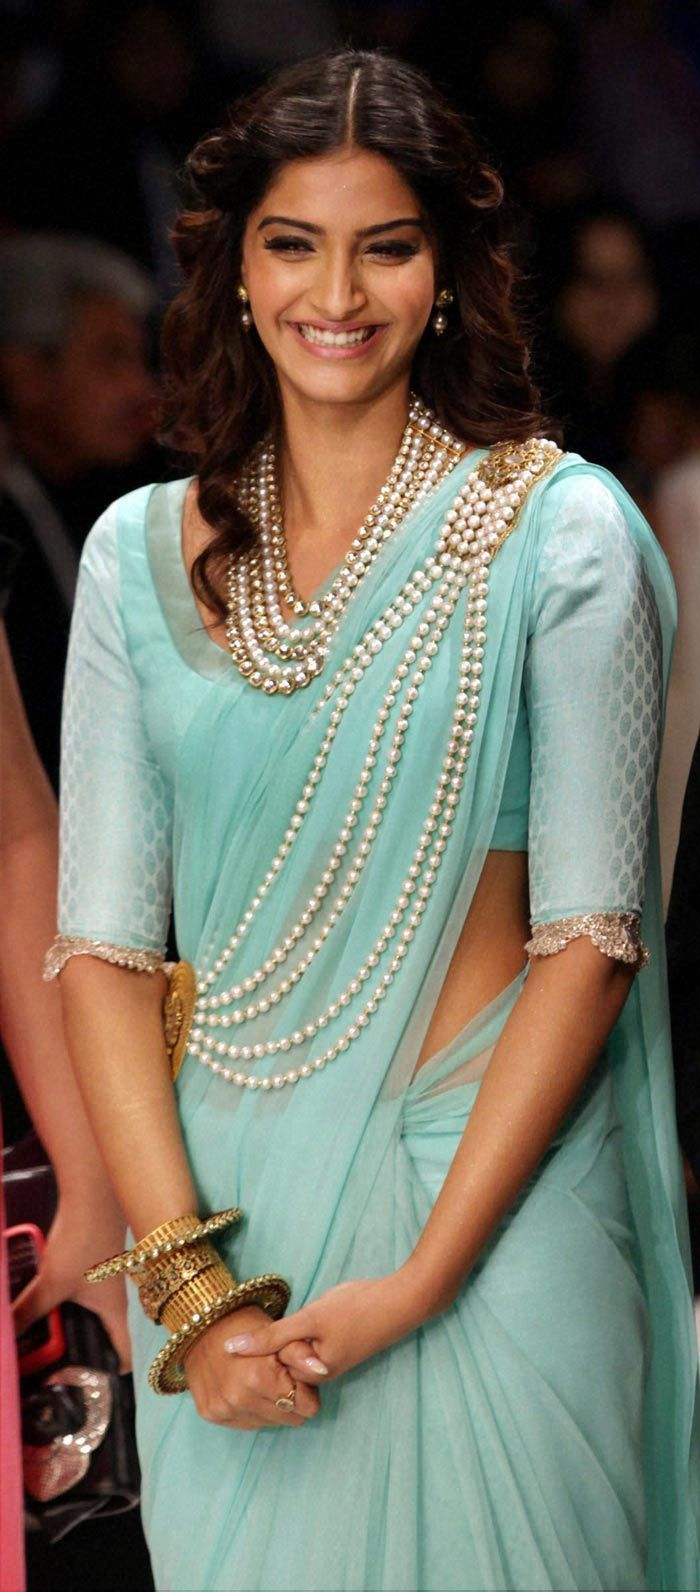 for the wedding ceremony - Sonam looks gorgeous in a chiffon saree ...